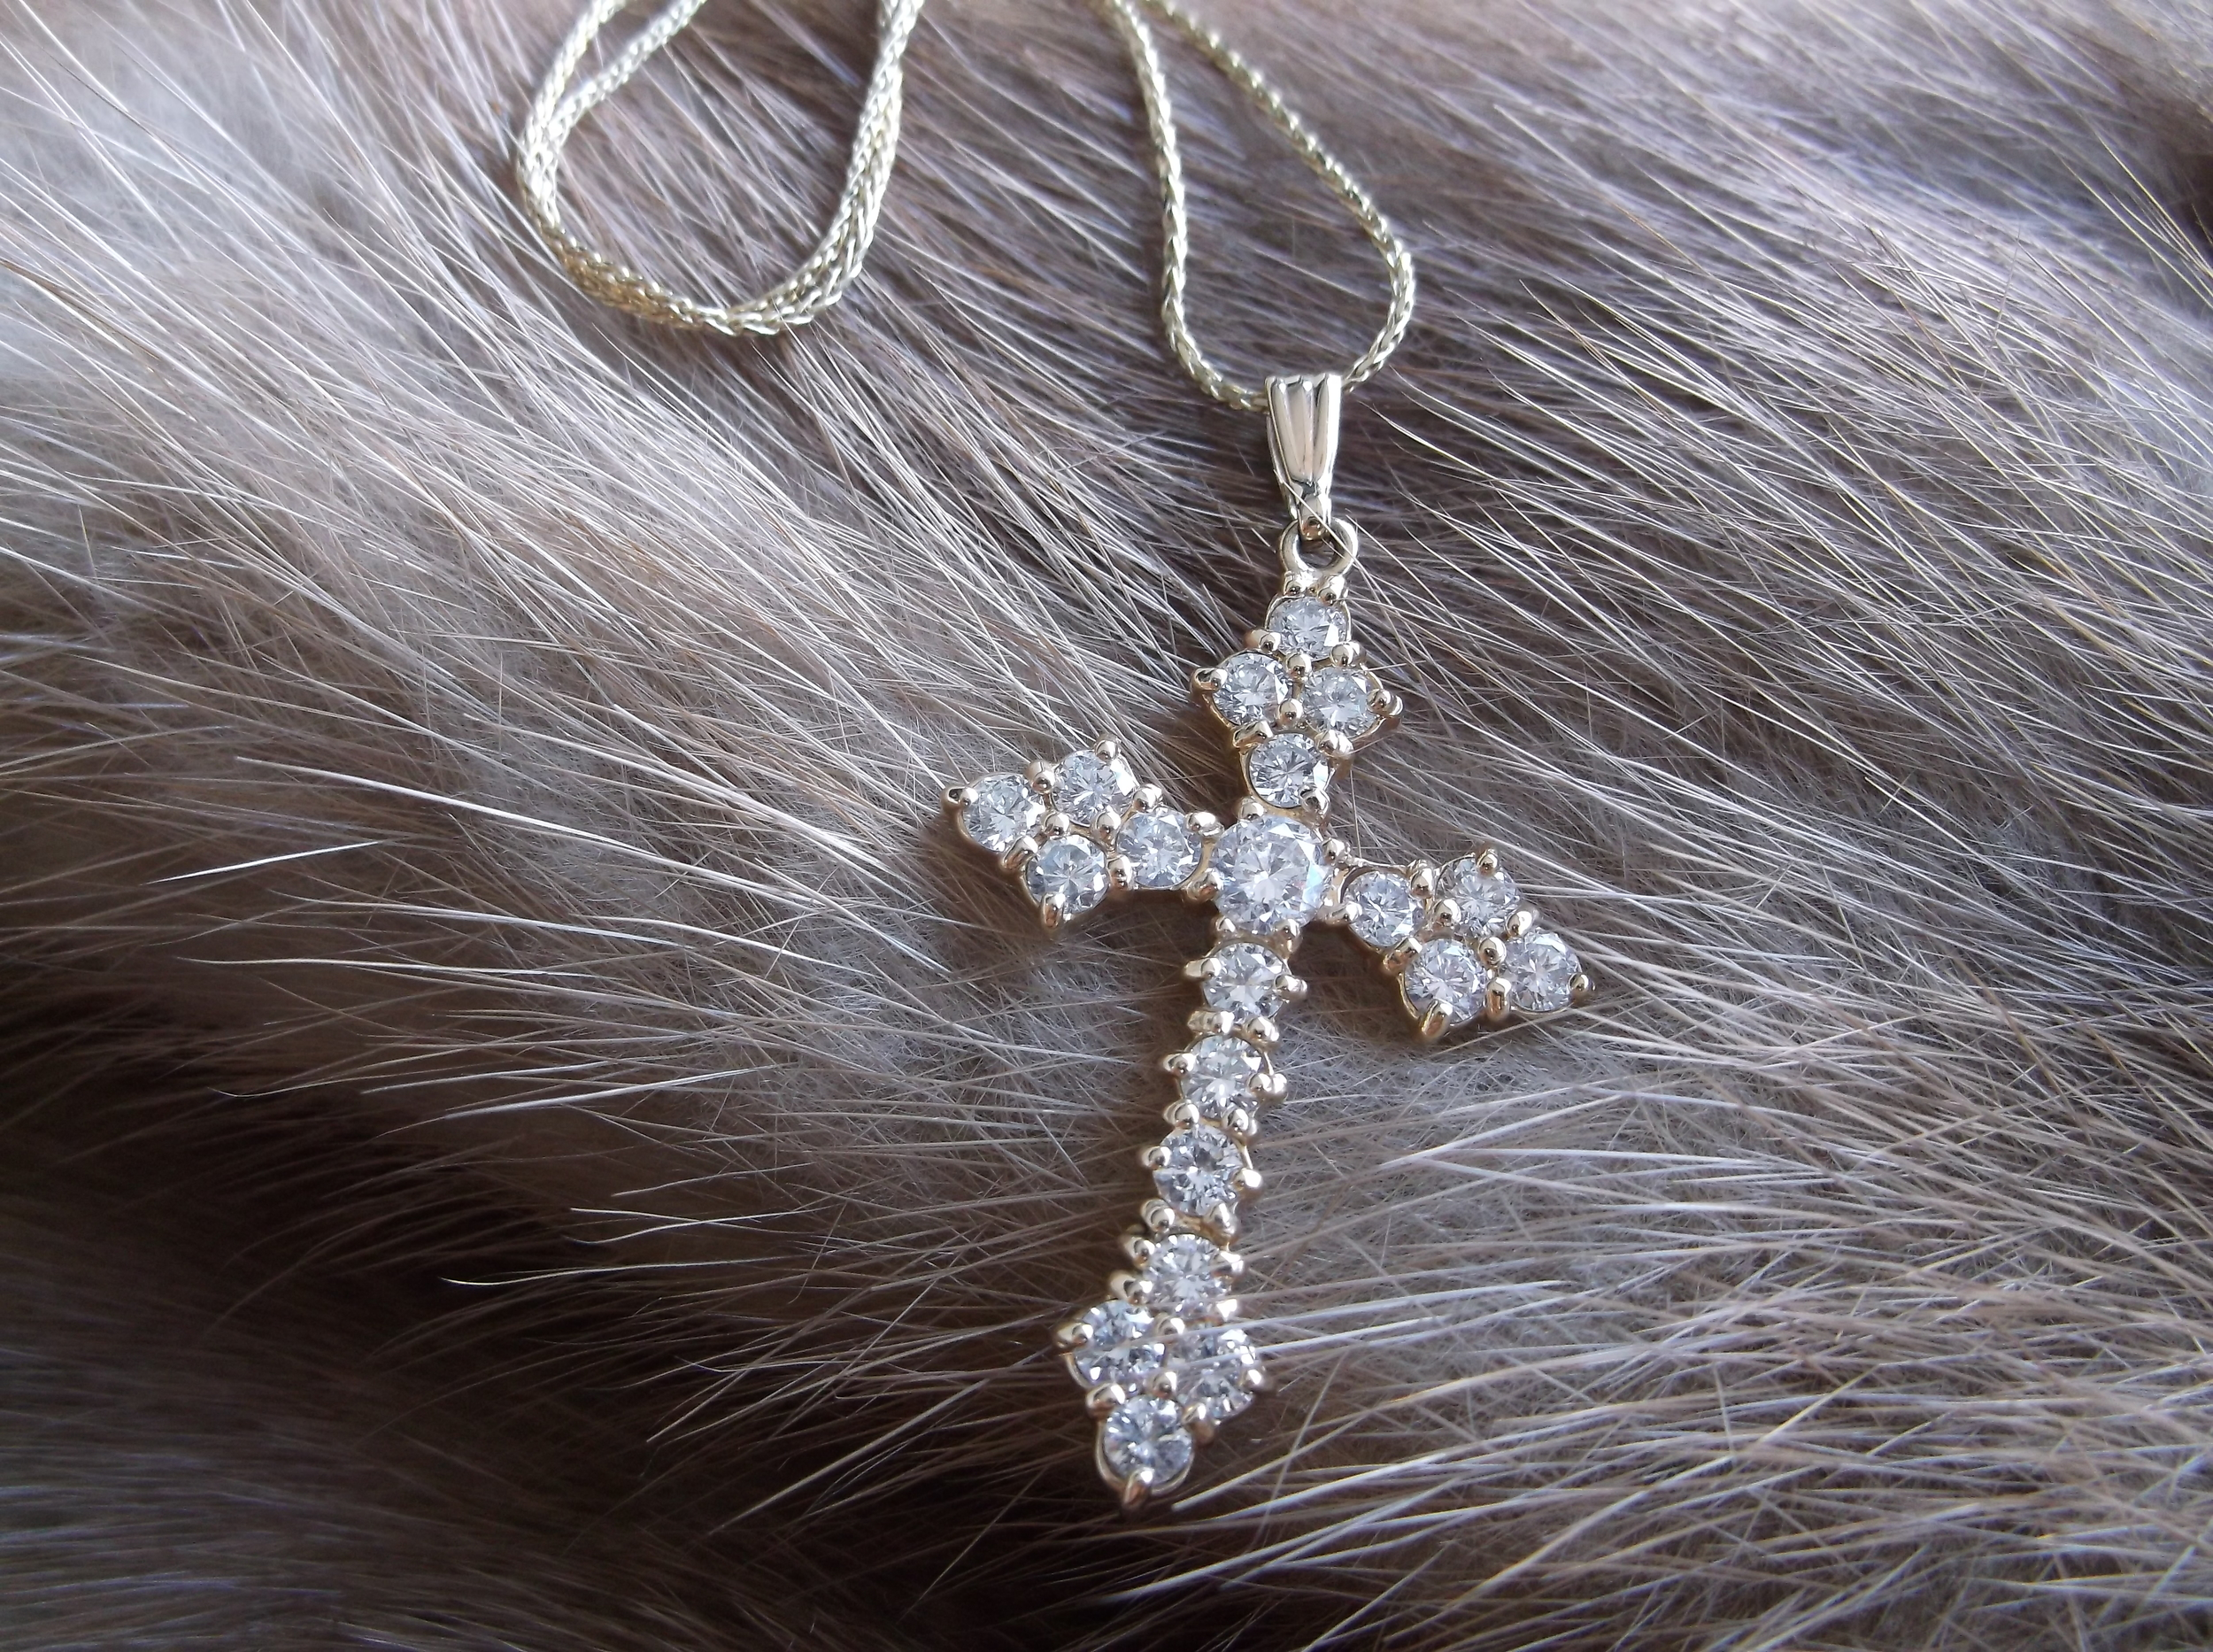 SOLD - Gorgeous diamond and yellow gold cross with 1.67 carats total weight in diamonds.